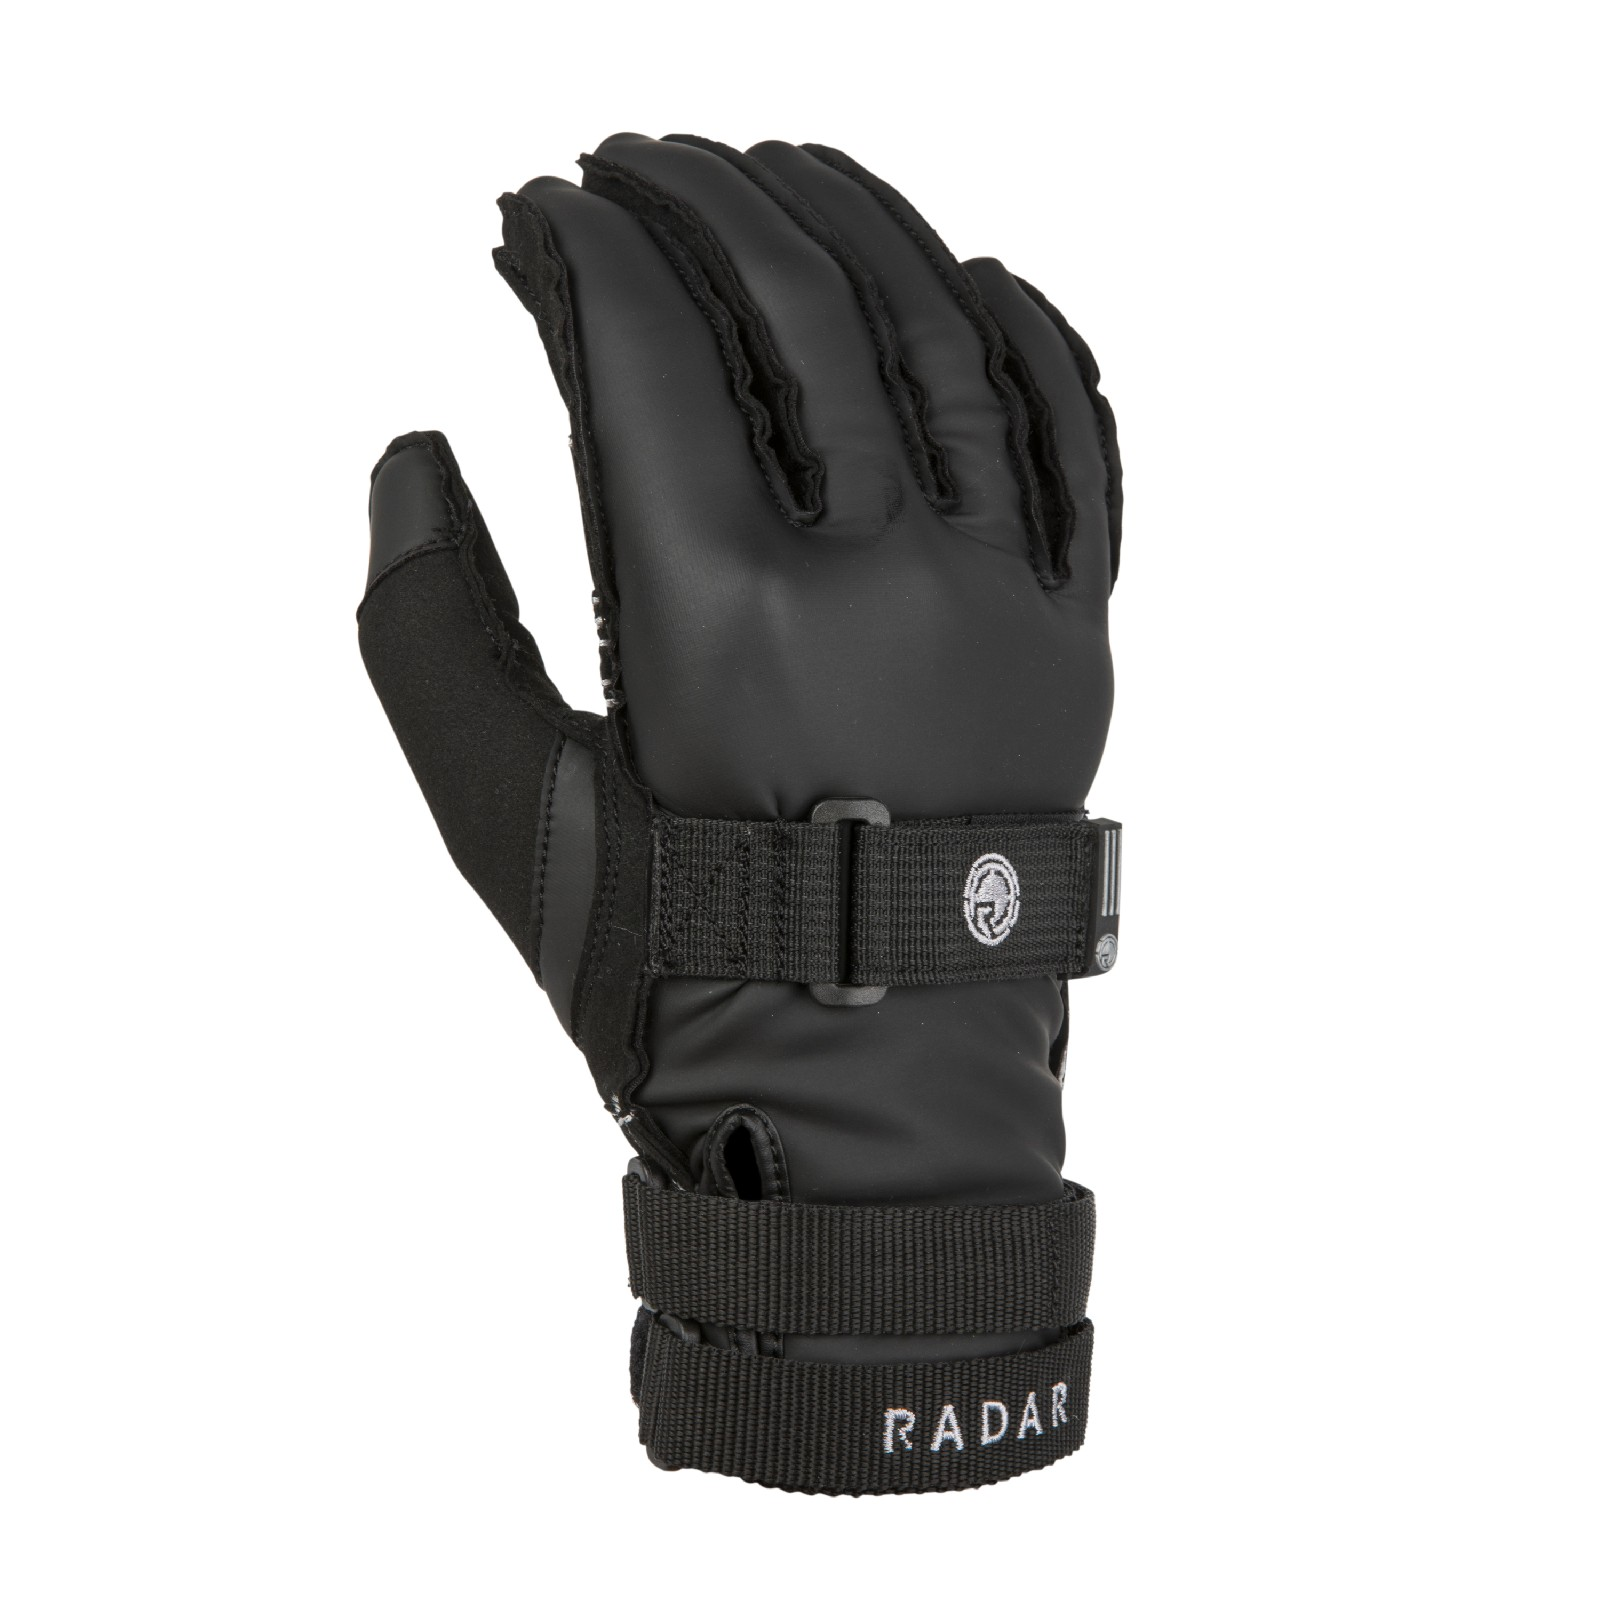 ATLAS - INSIDE-OUT GLOVE RADAR 2019